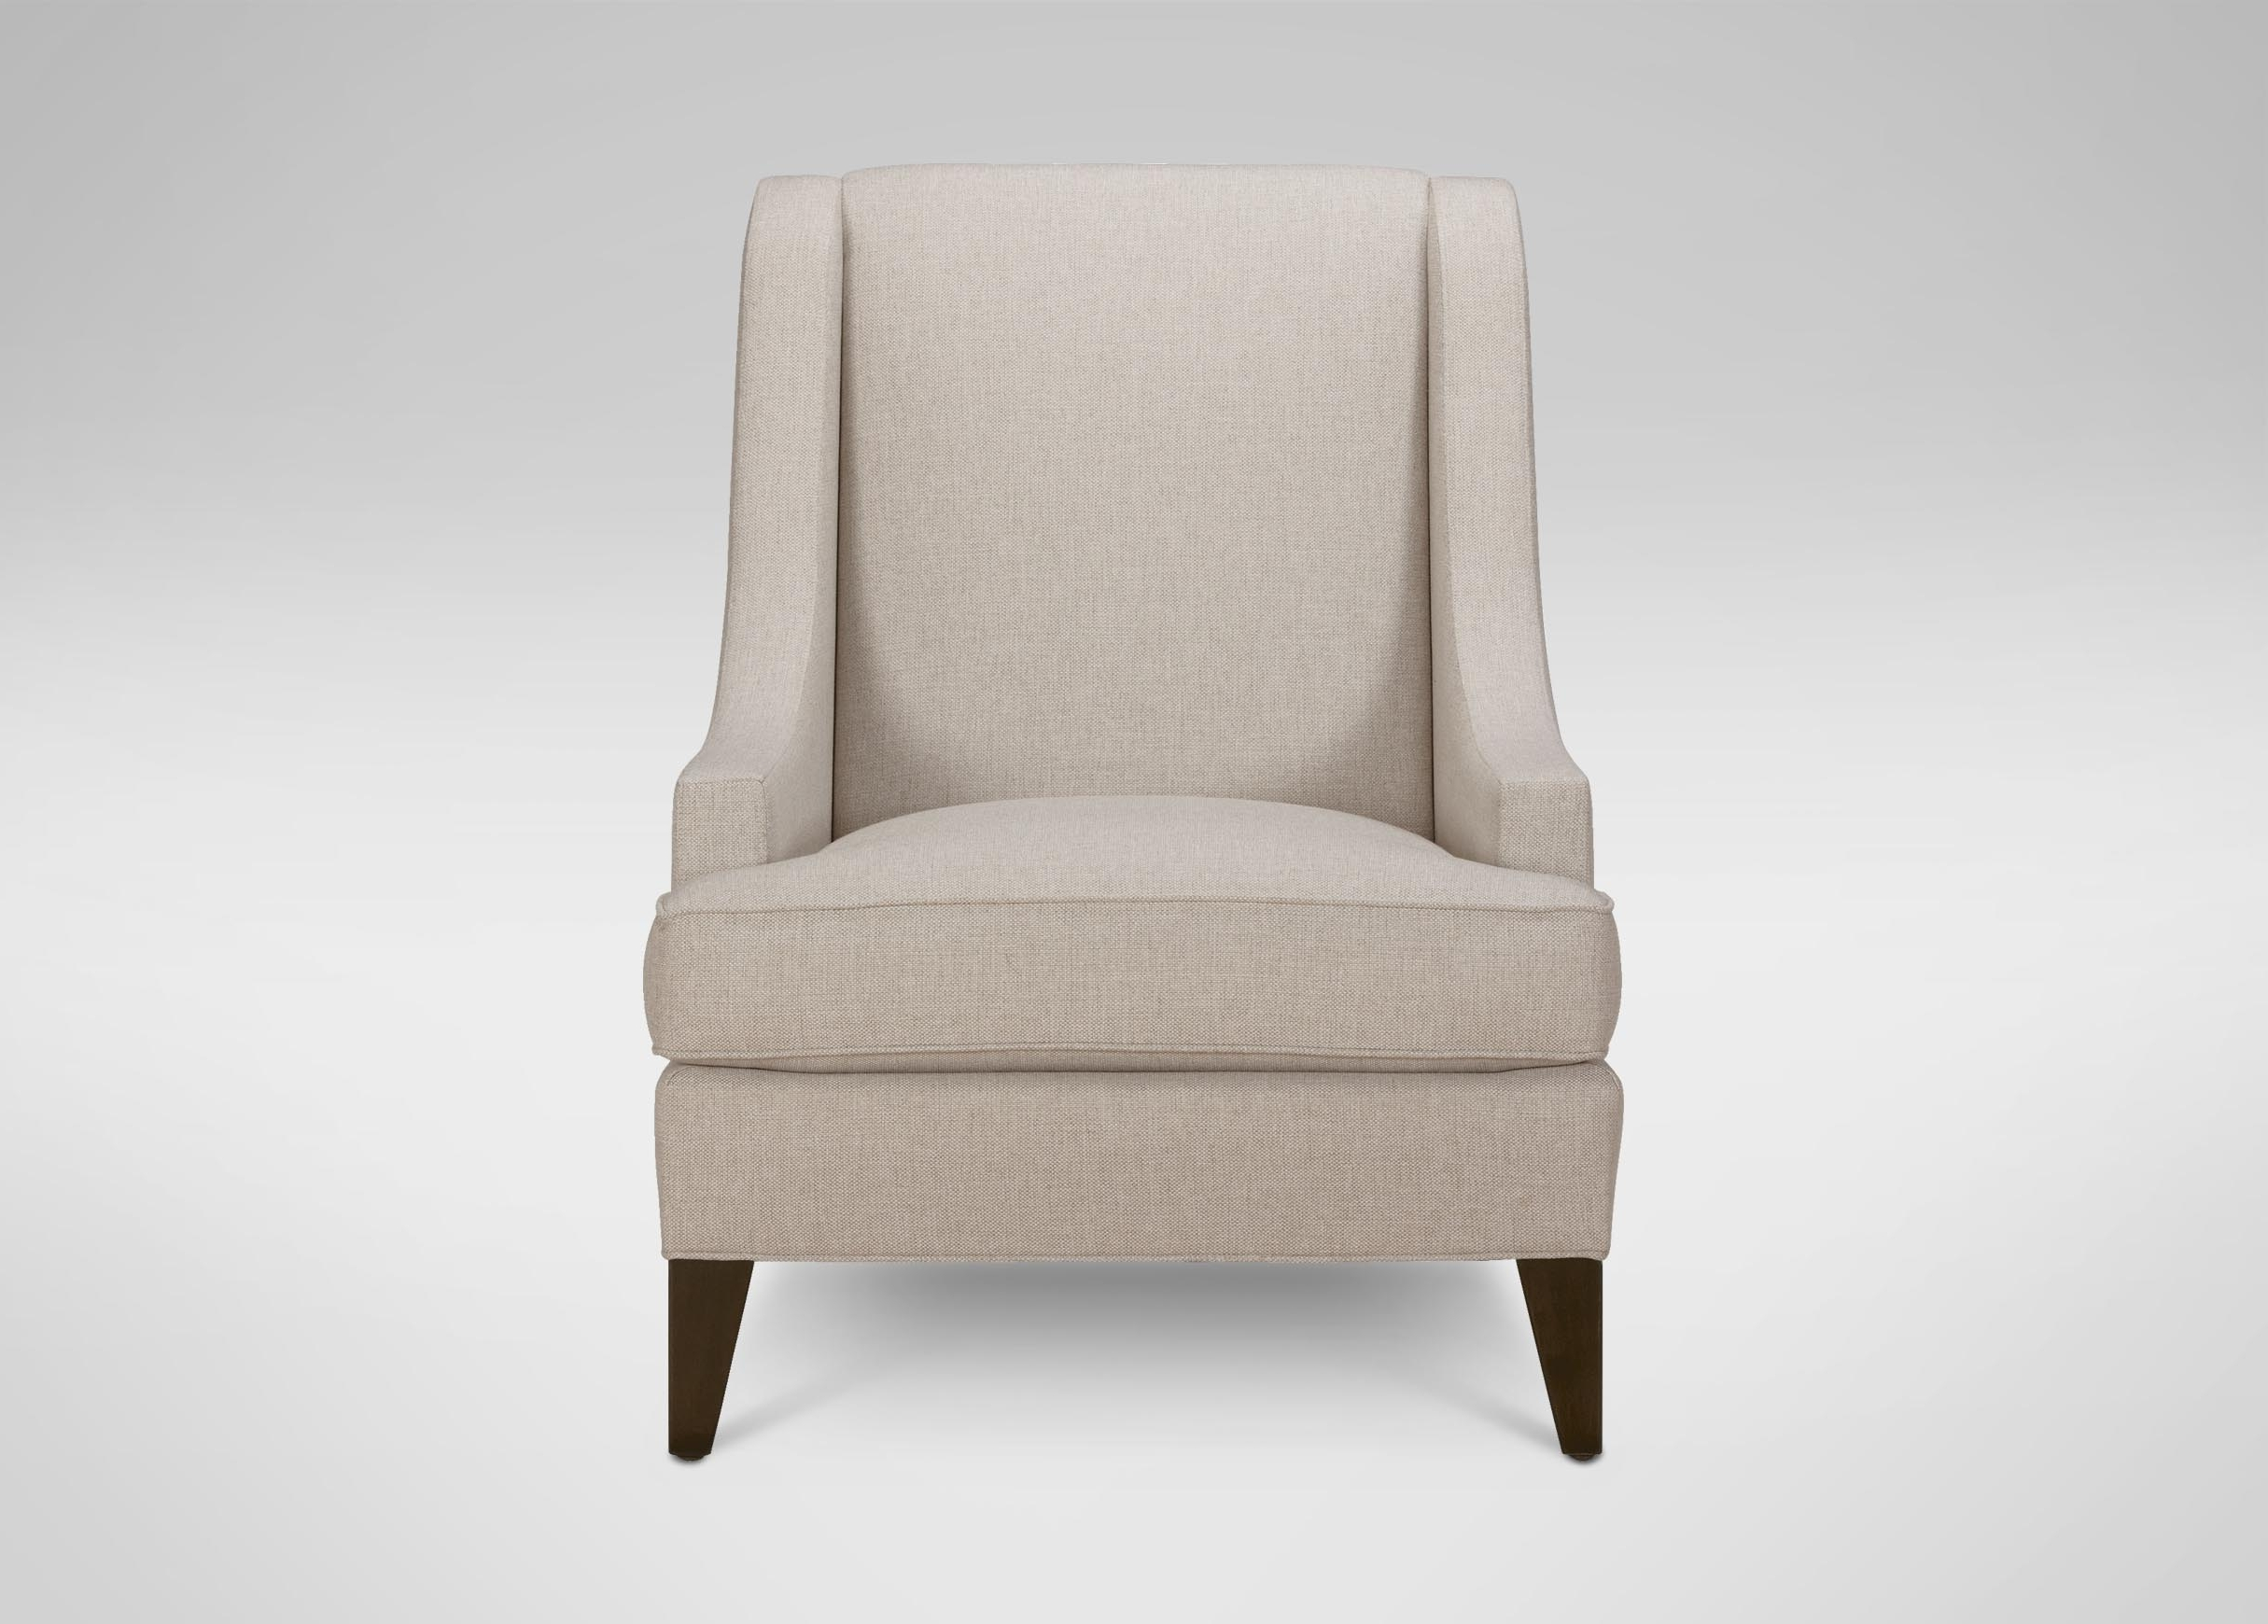 Preferred Ethan Allen Chaises Inside Emerson Chair, Quick Ship (View 10 of 15)